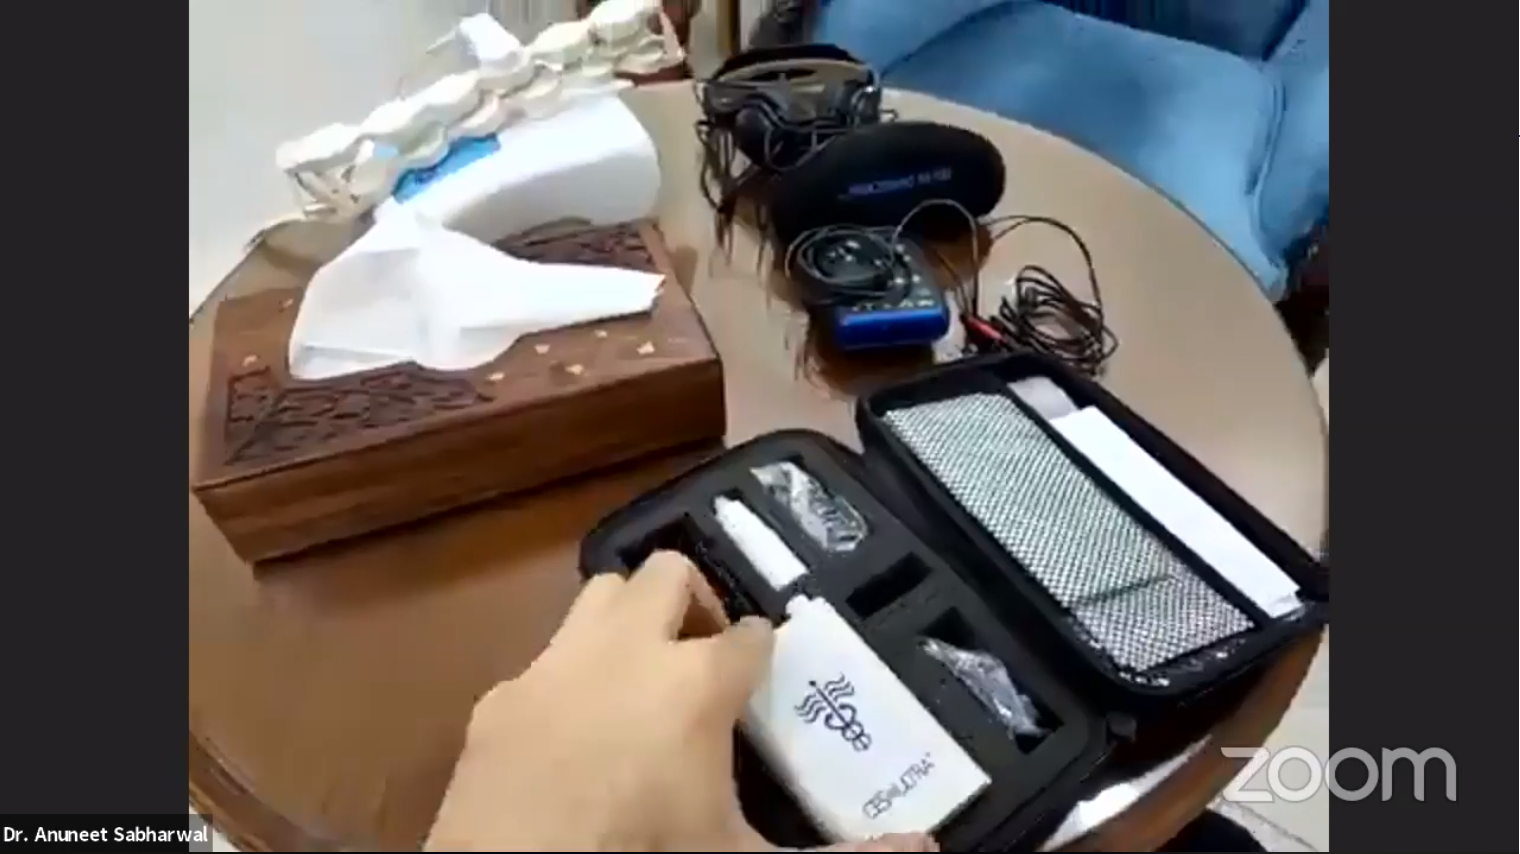 Cranial Electrotherapy Stimulation device